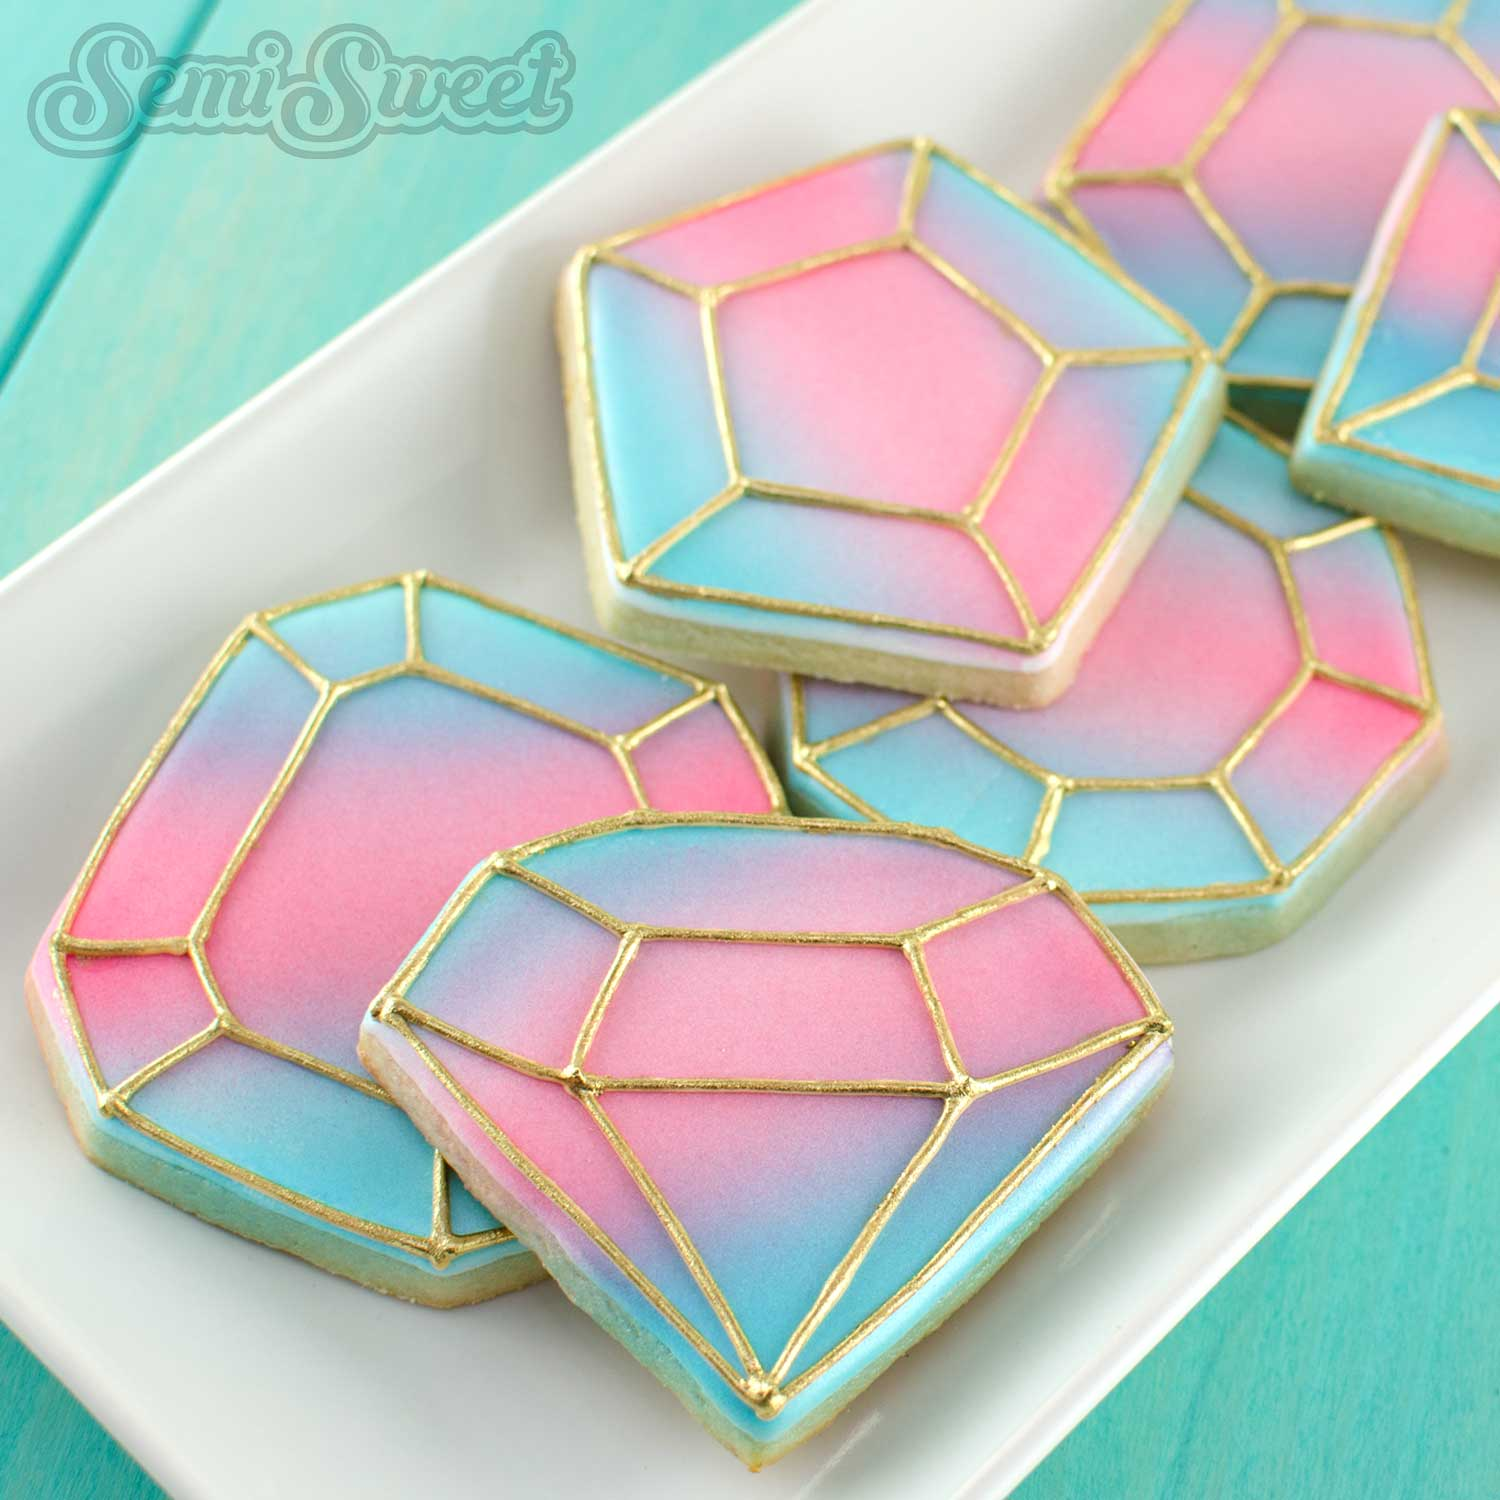 How to Make Gemstone Cookies